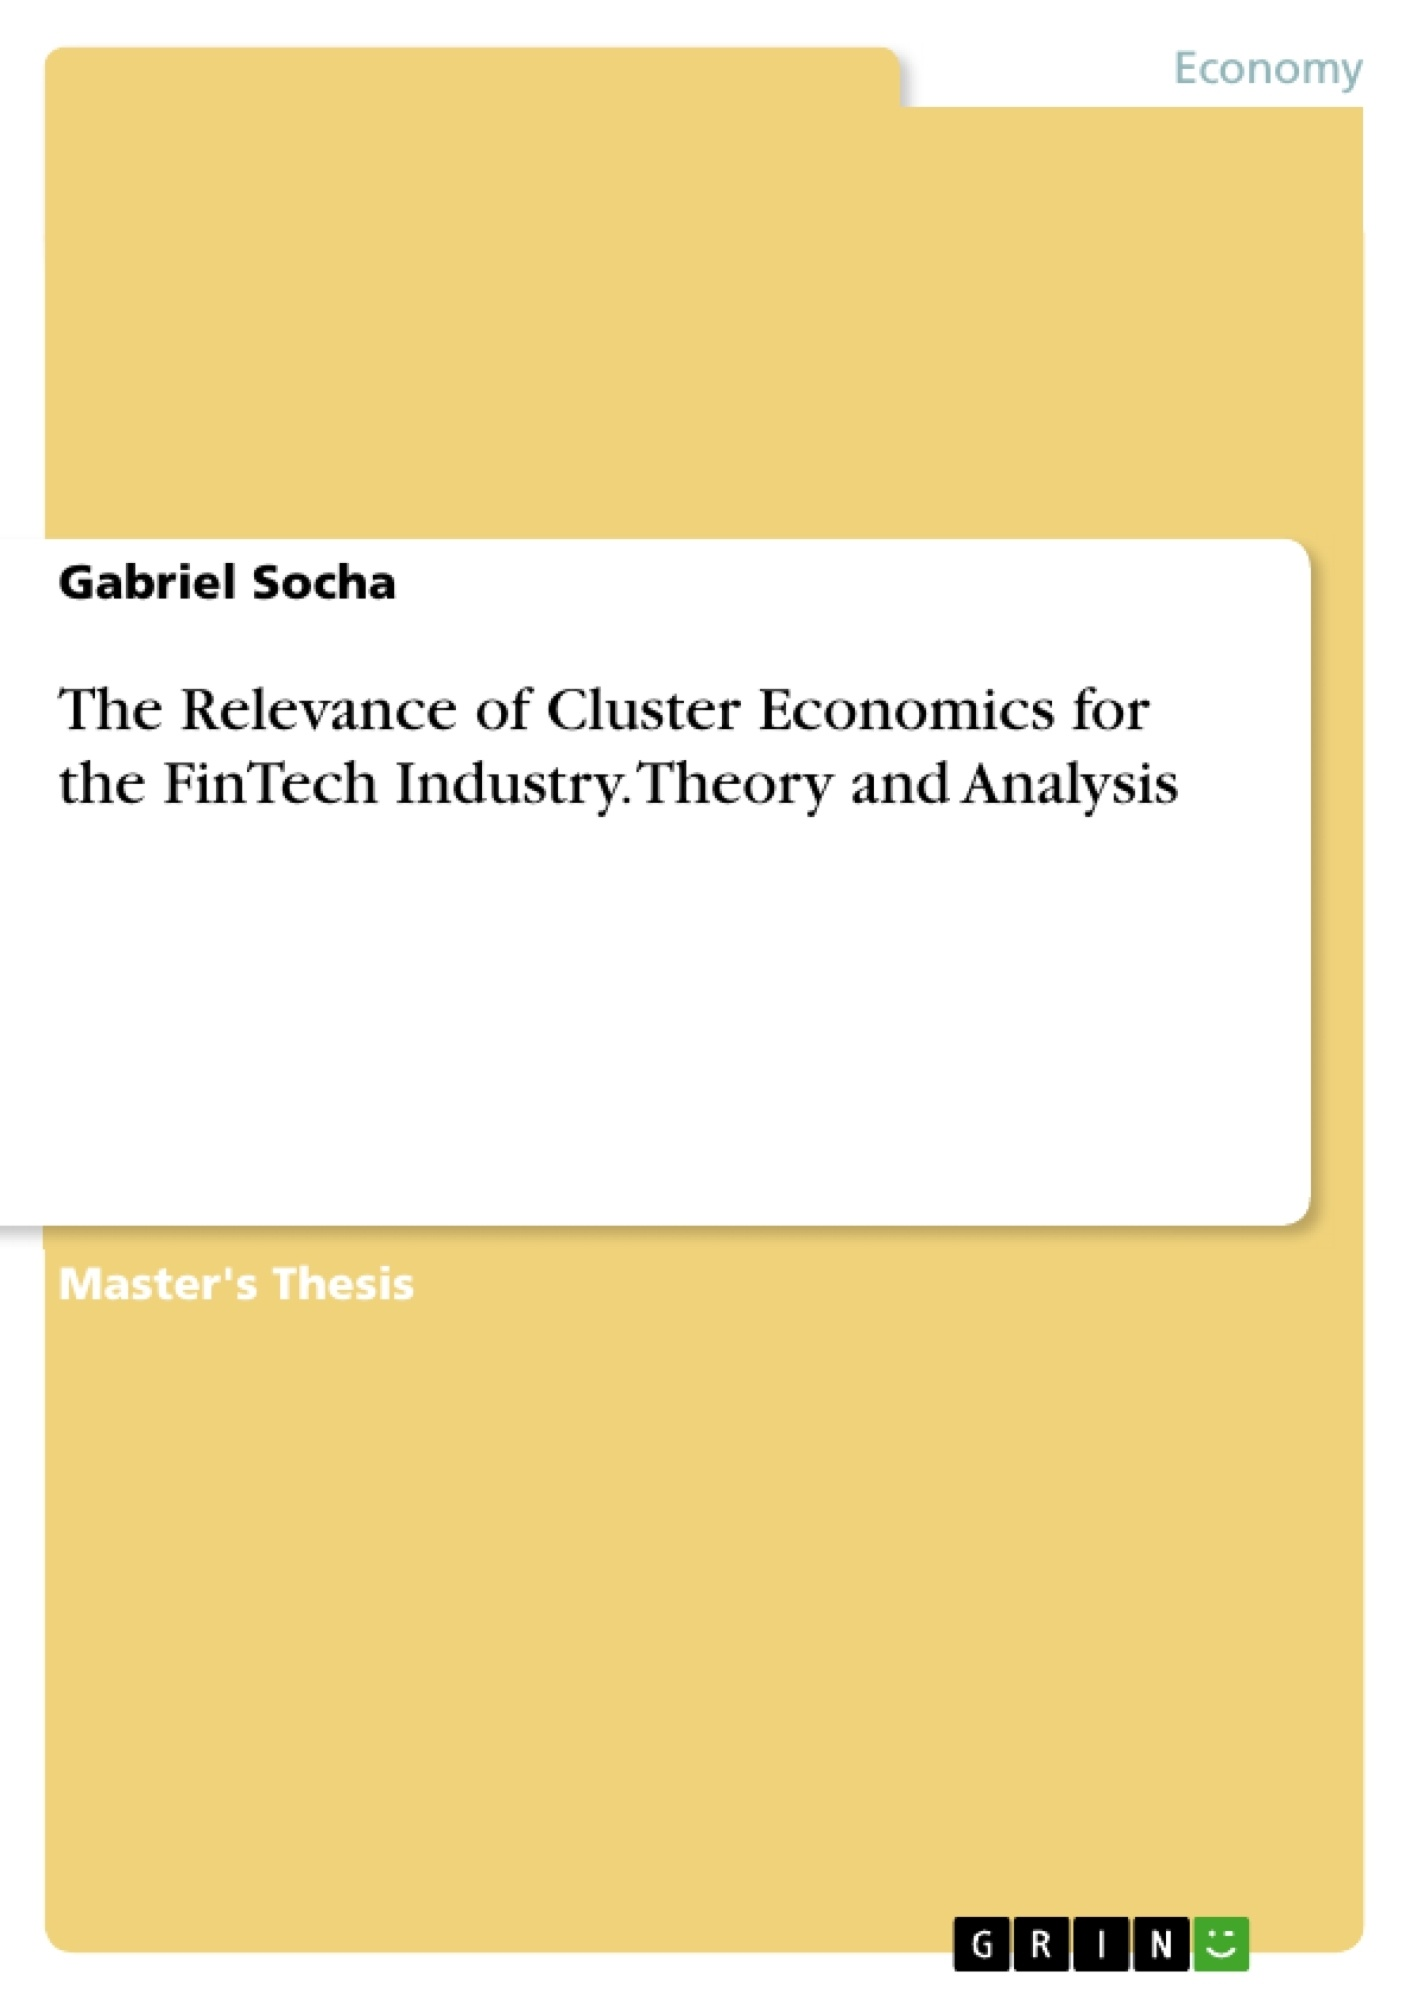 Title: The Relevance of Cluster Economics for the FinTech Industry. Theory and Analysis